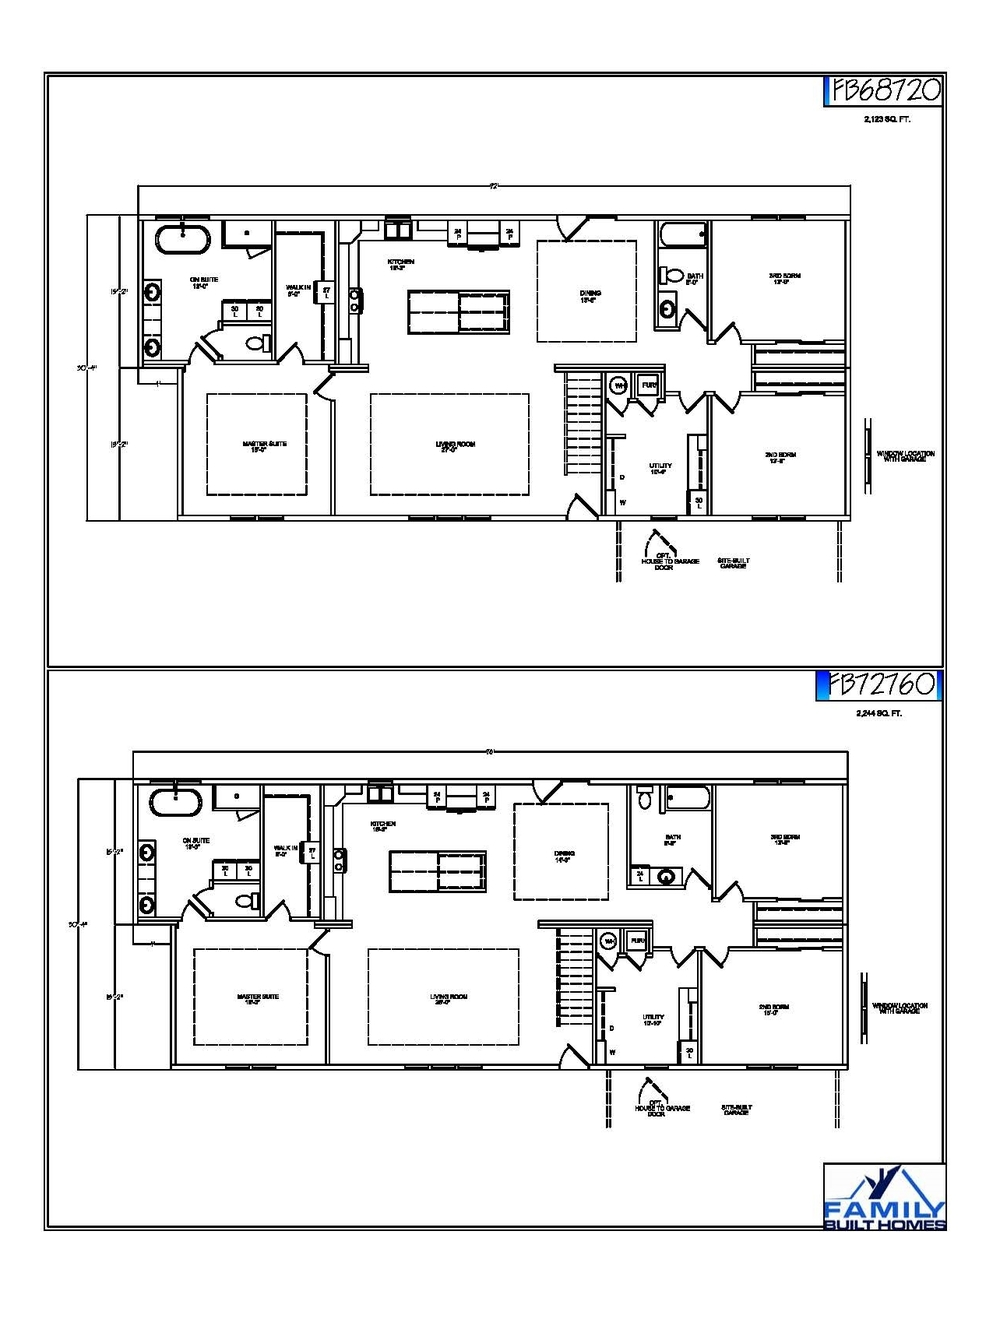 Floor plan collection sheets Model (1).pdf7260.jpg